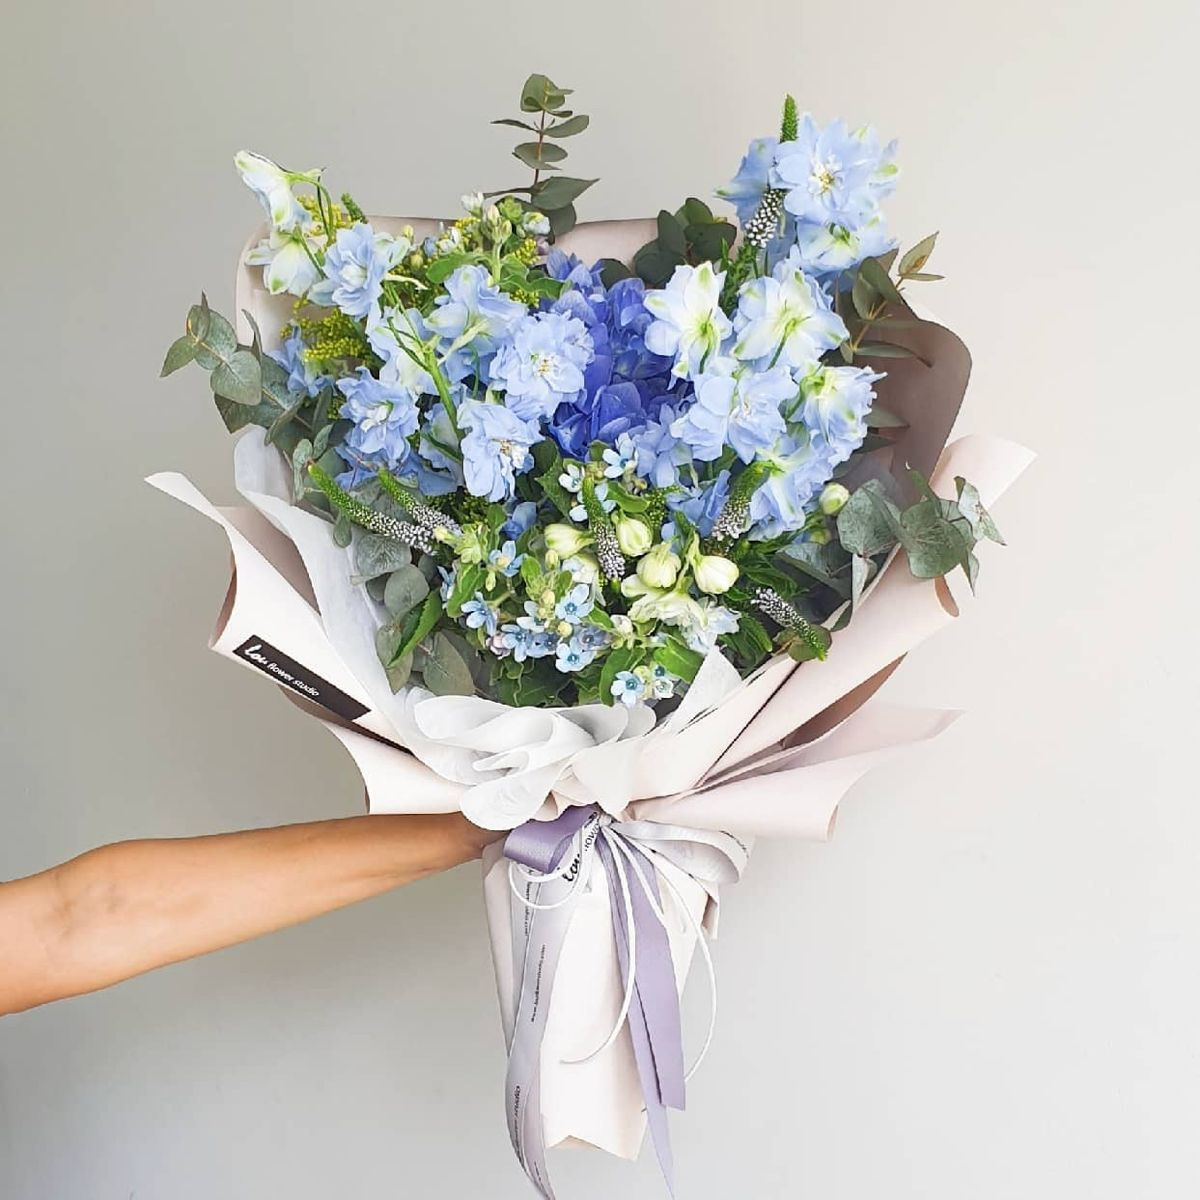 Delphinium And Blue Hydrangea Bouquet In 2020 With Images Blue Hydrangea Bouquet Blue Bouquet Bouquet Delivery